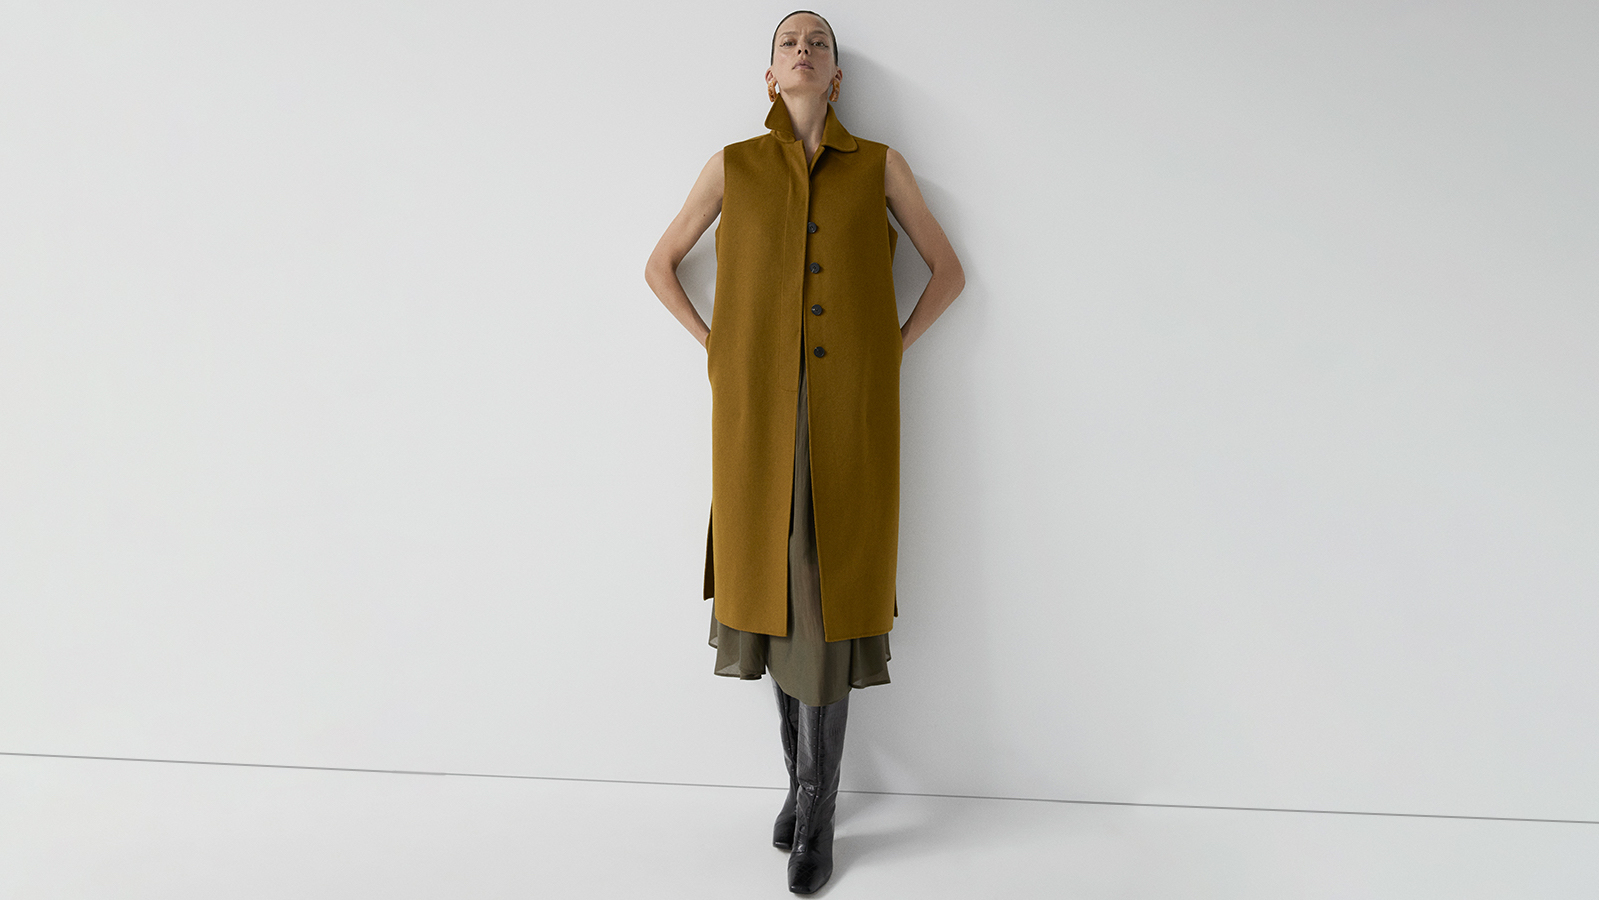 Designer coat crafted from a merino wool blend. It features shirt collar, buttons closure with flap, two pockets and side slits.